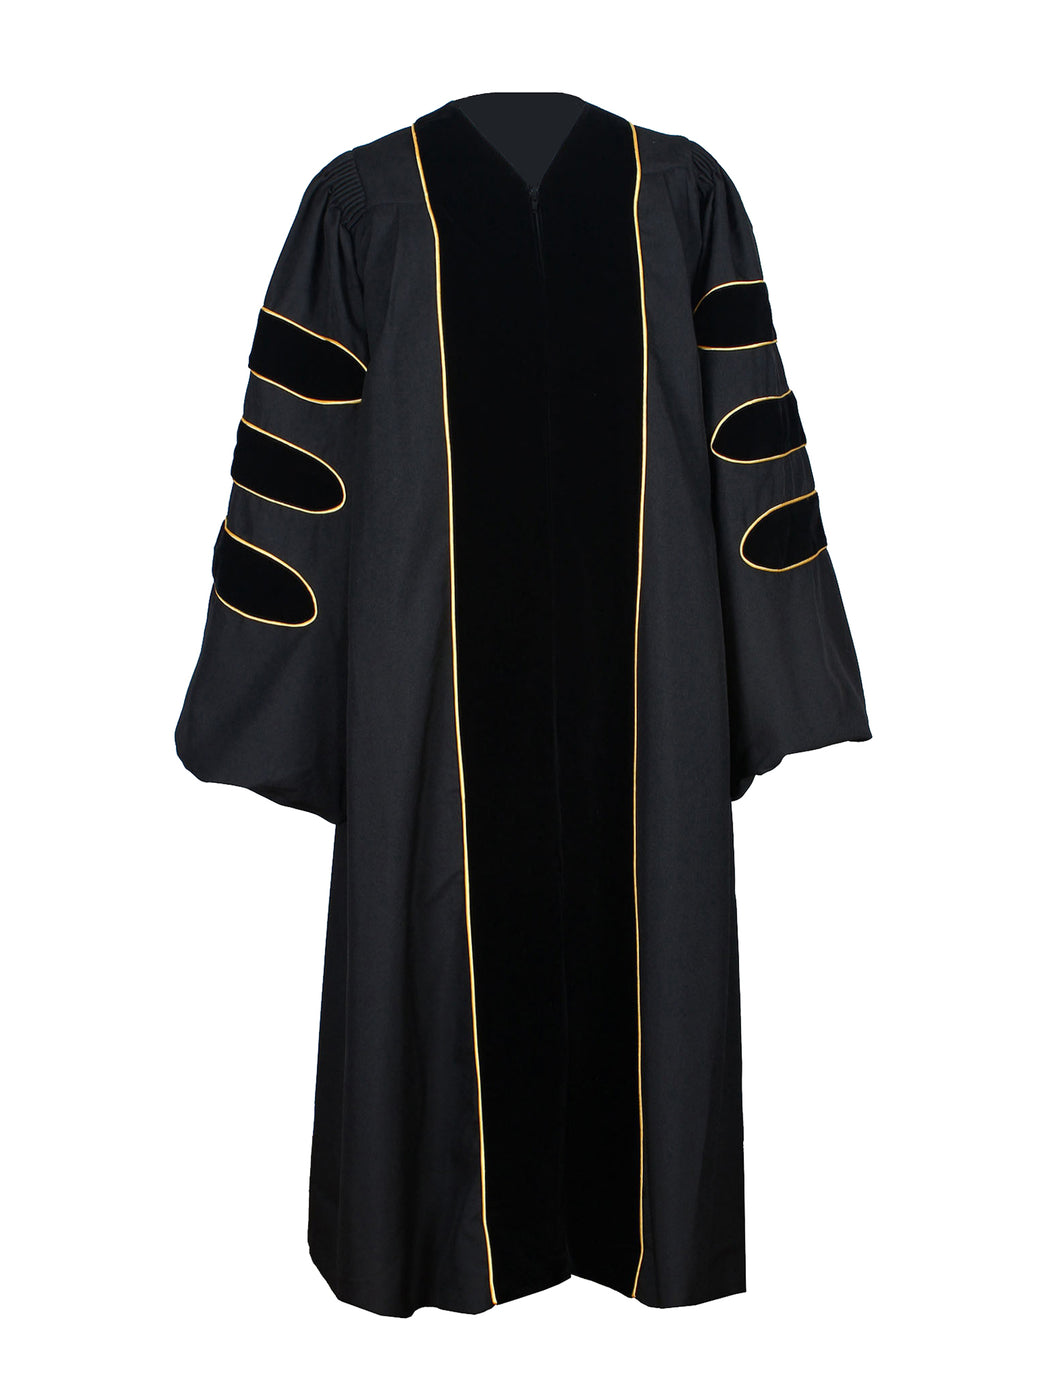 Deluxe Black Doctoral Graduation Gown Regalia Doctoral Gown Only with Gold Piping